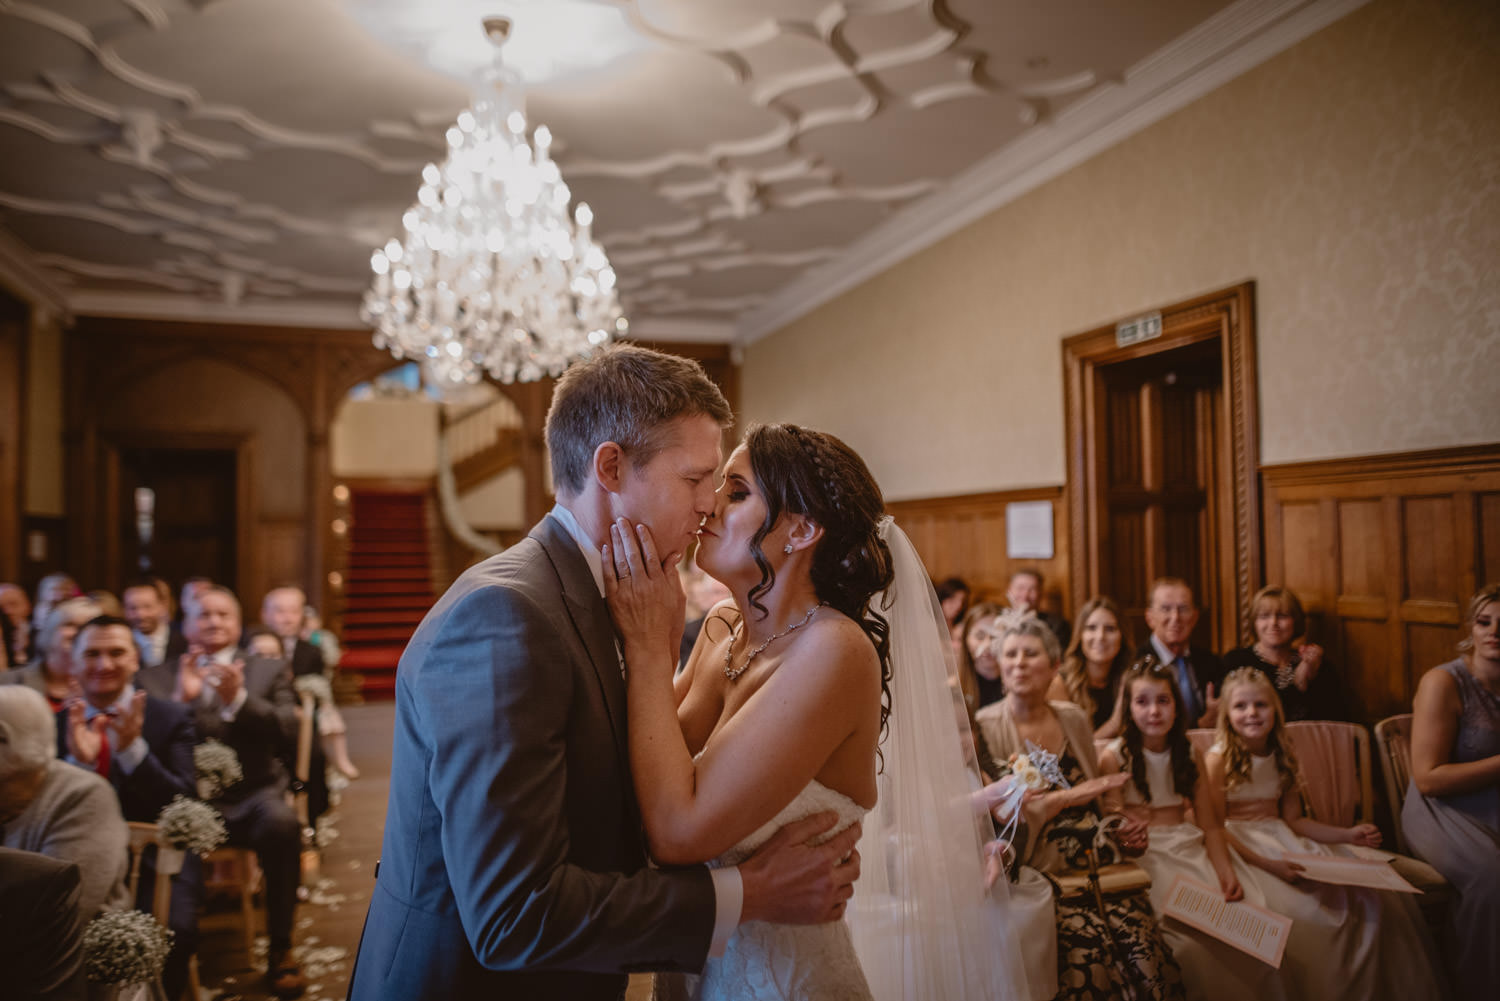 Bride and Groom kiss at their wedding